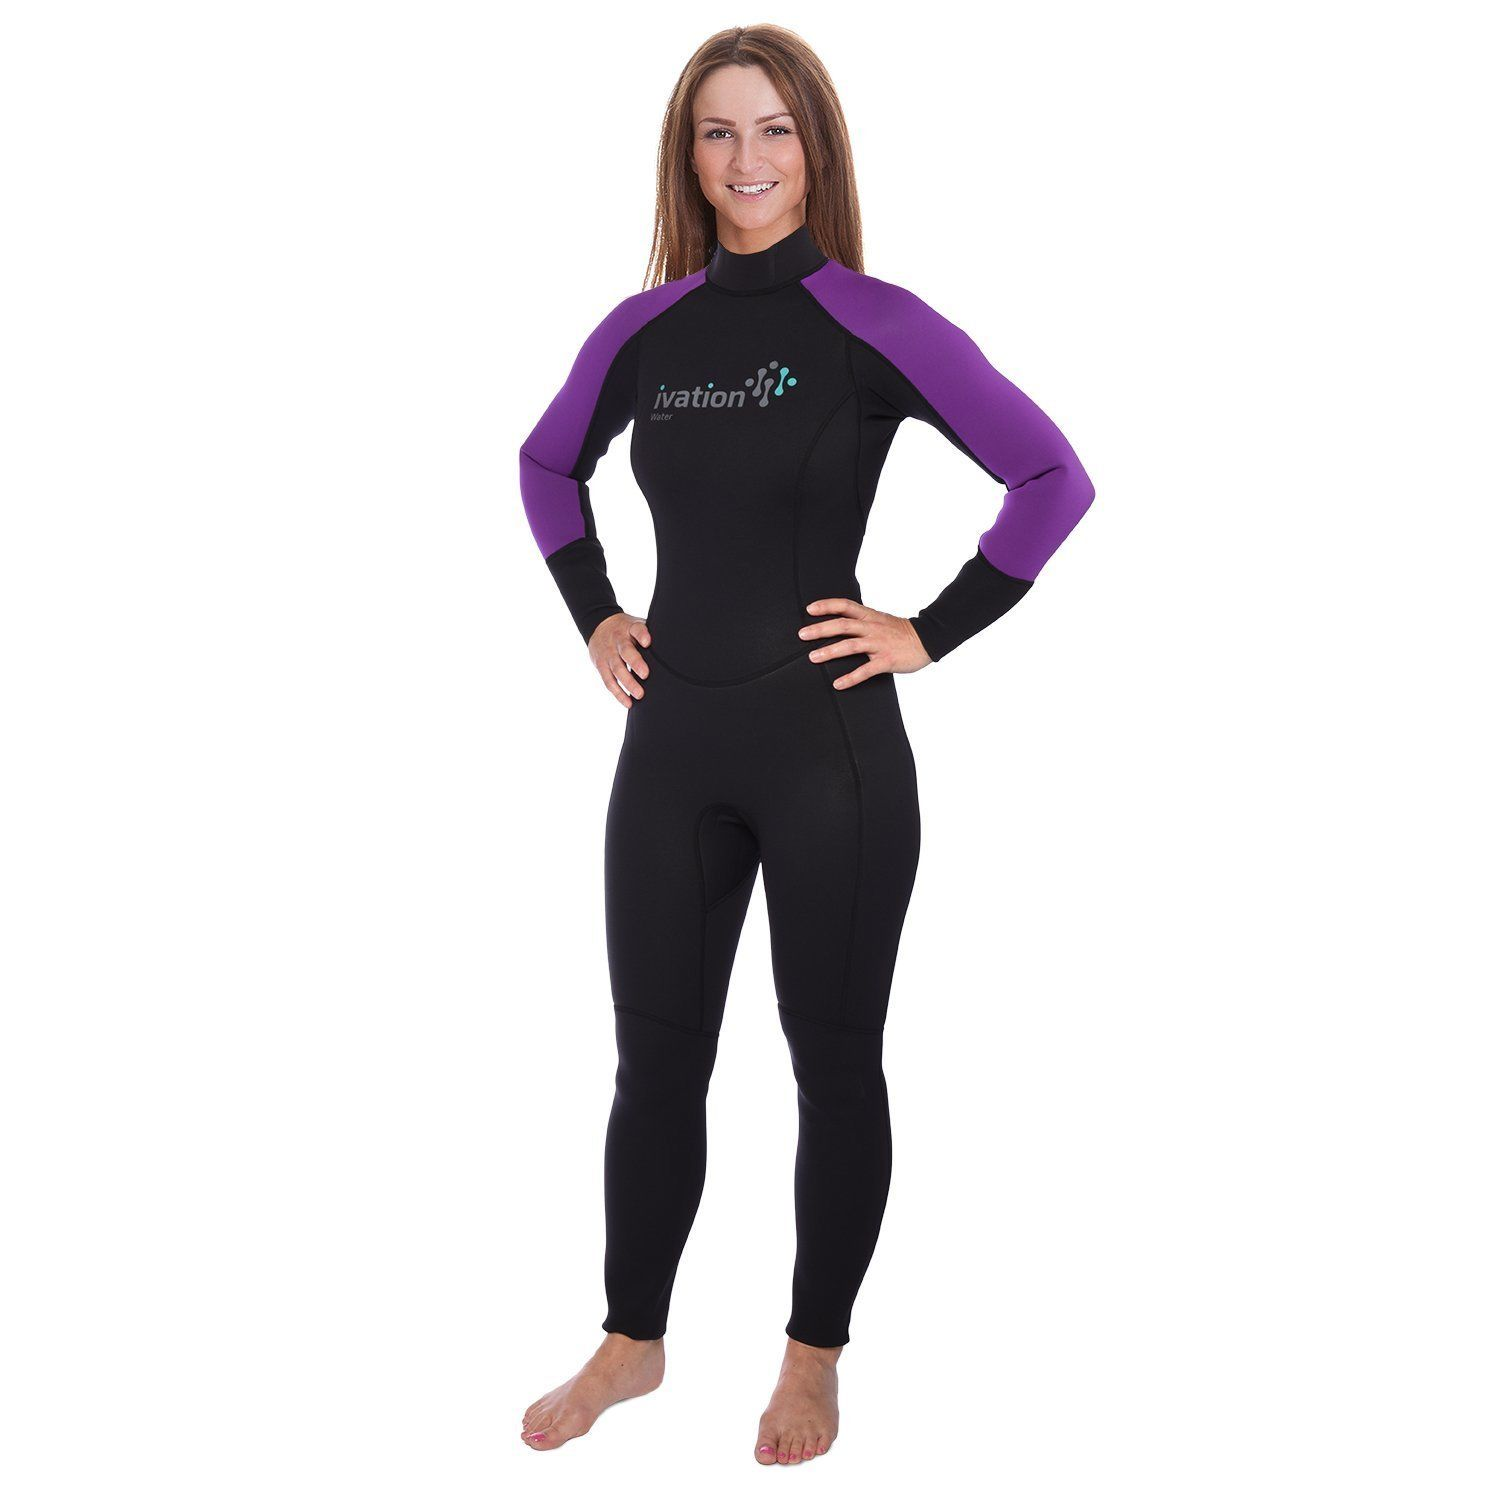 Ivation Women's 2.5mm Premium Neoprene Full Body Wetsuit Excellent for Multisport Use In and Out of Water by Ivation